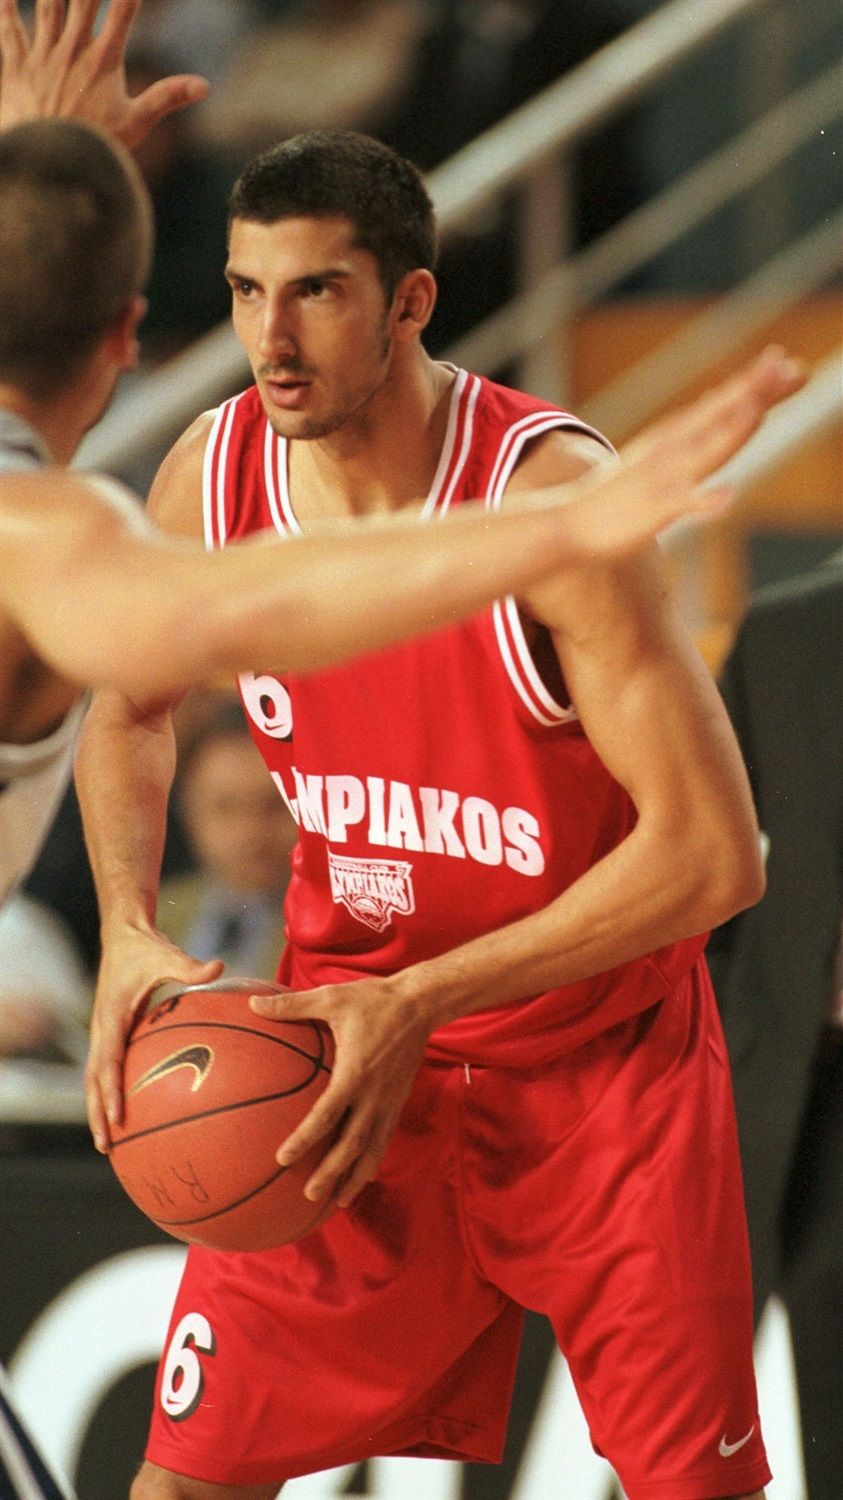 Dusan Vukcevic had 12 points for the Reds